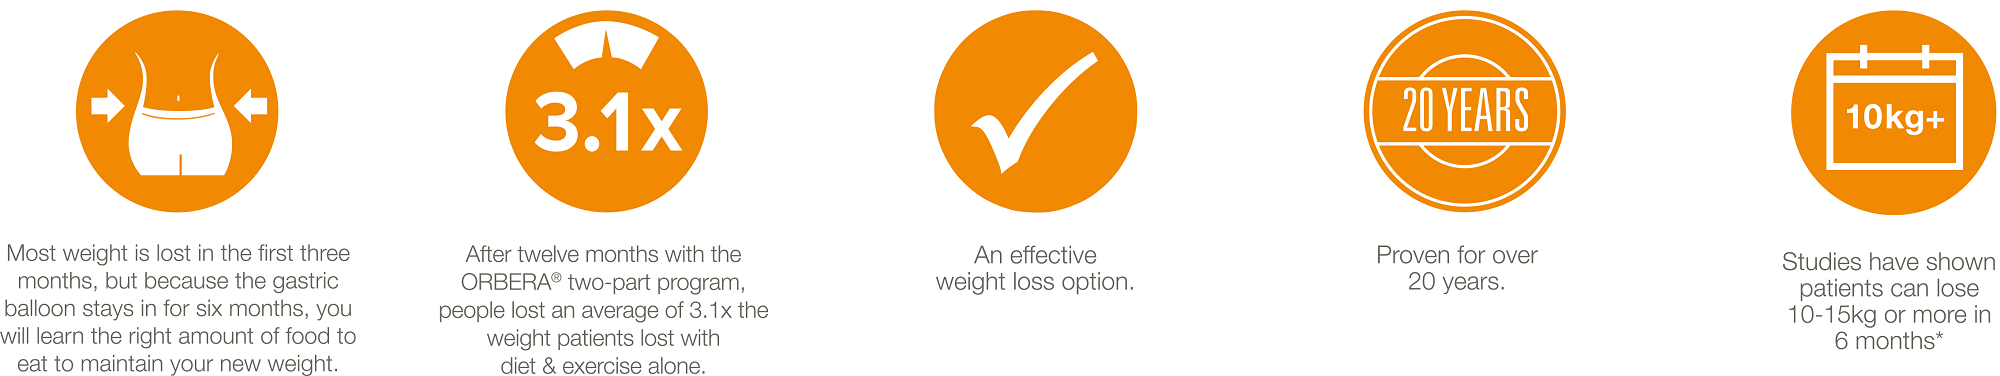 the benefits of the orbera gastric balloon and weight loss program